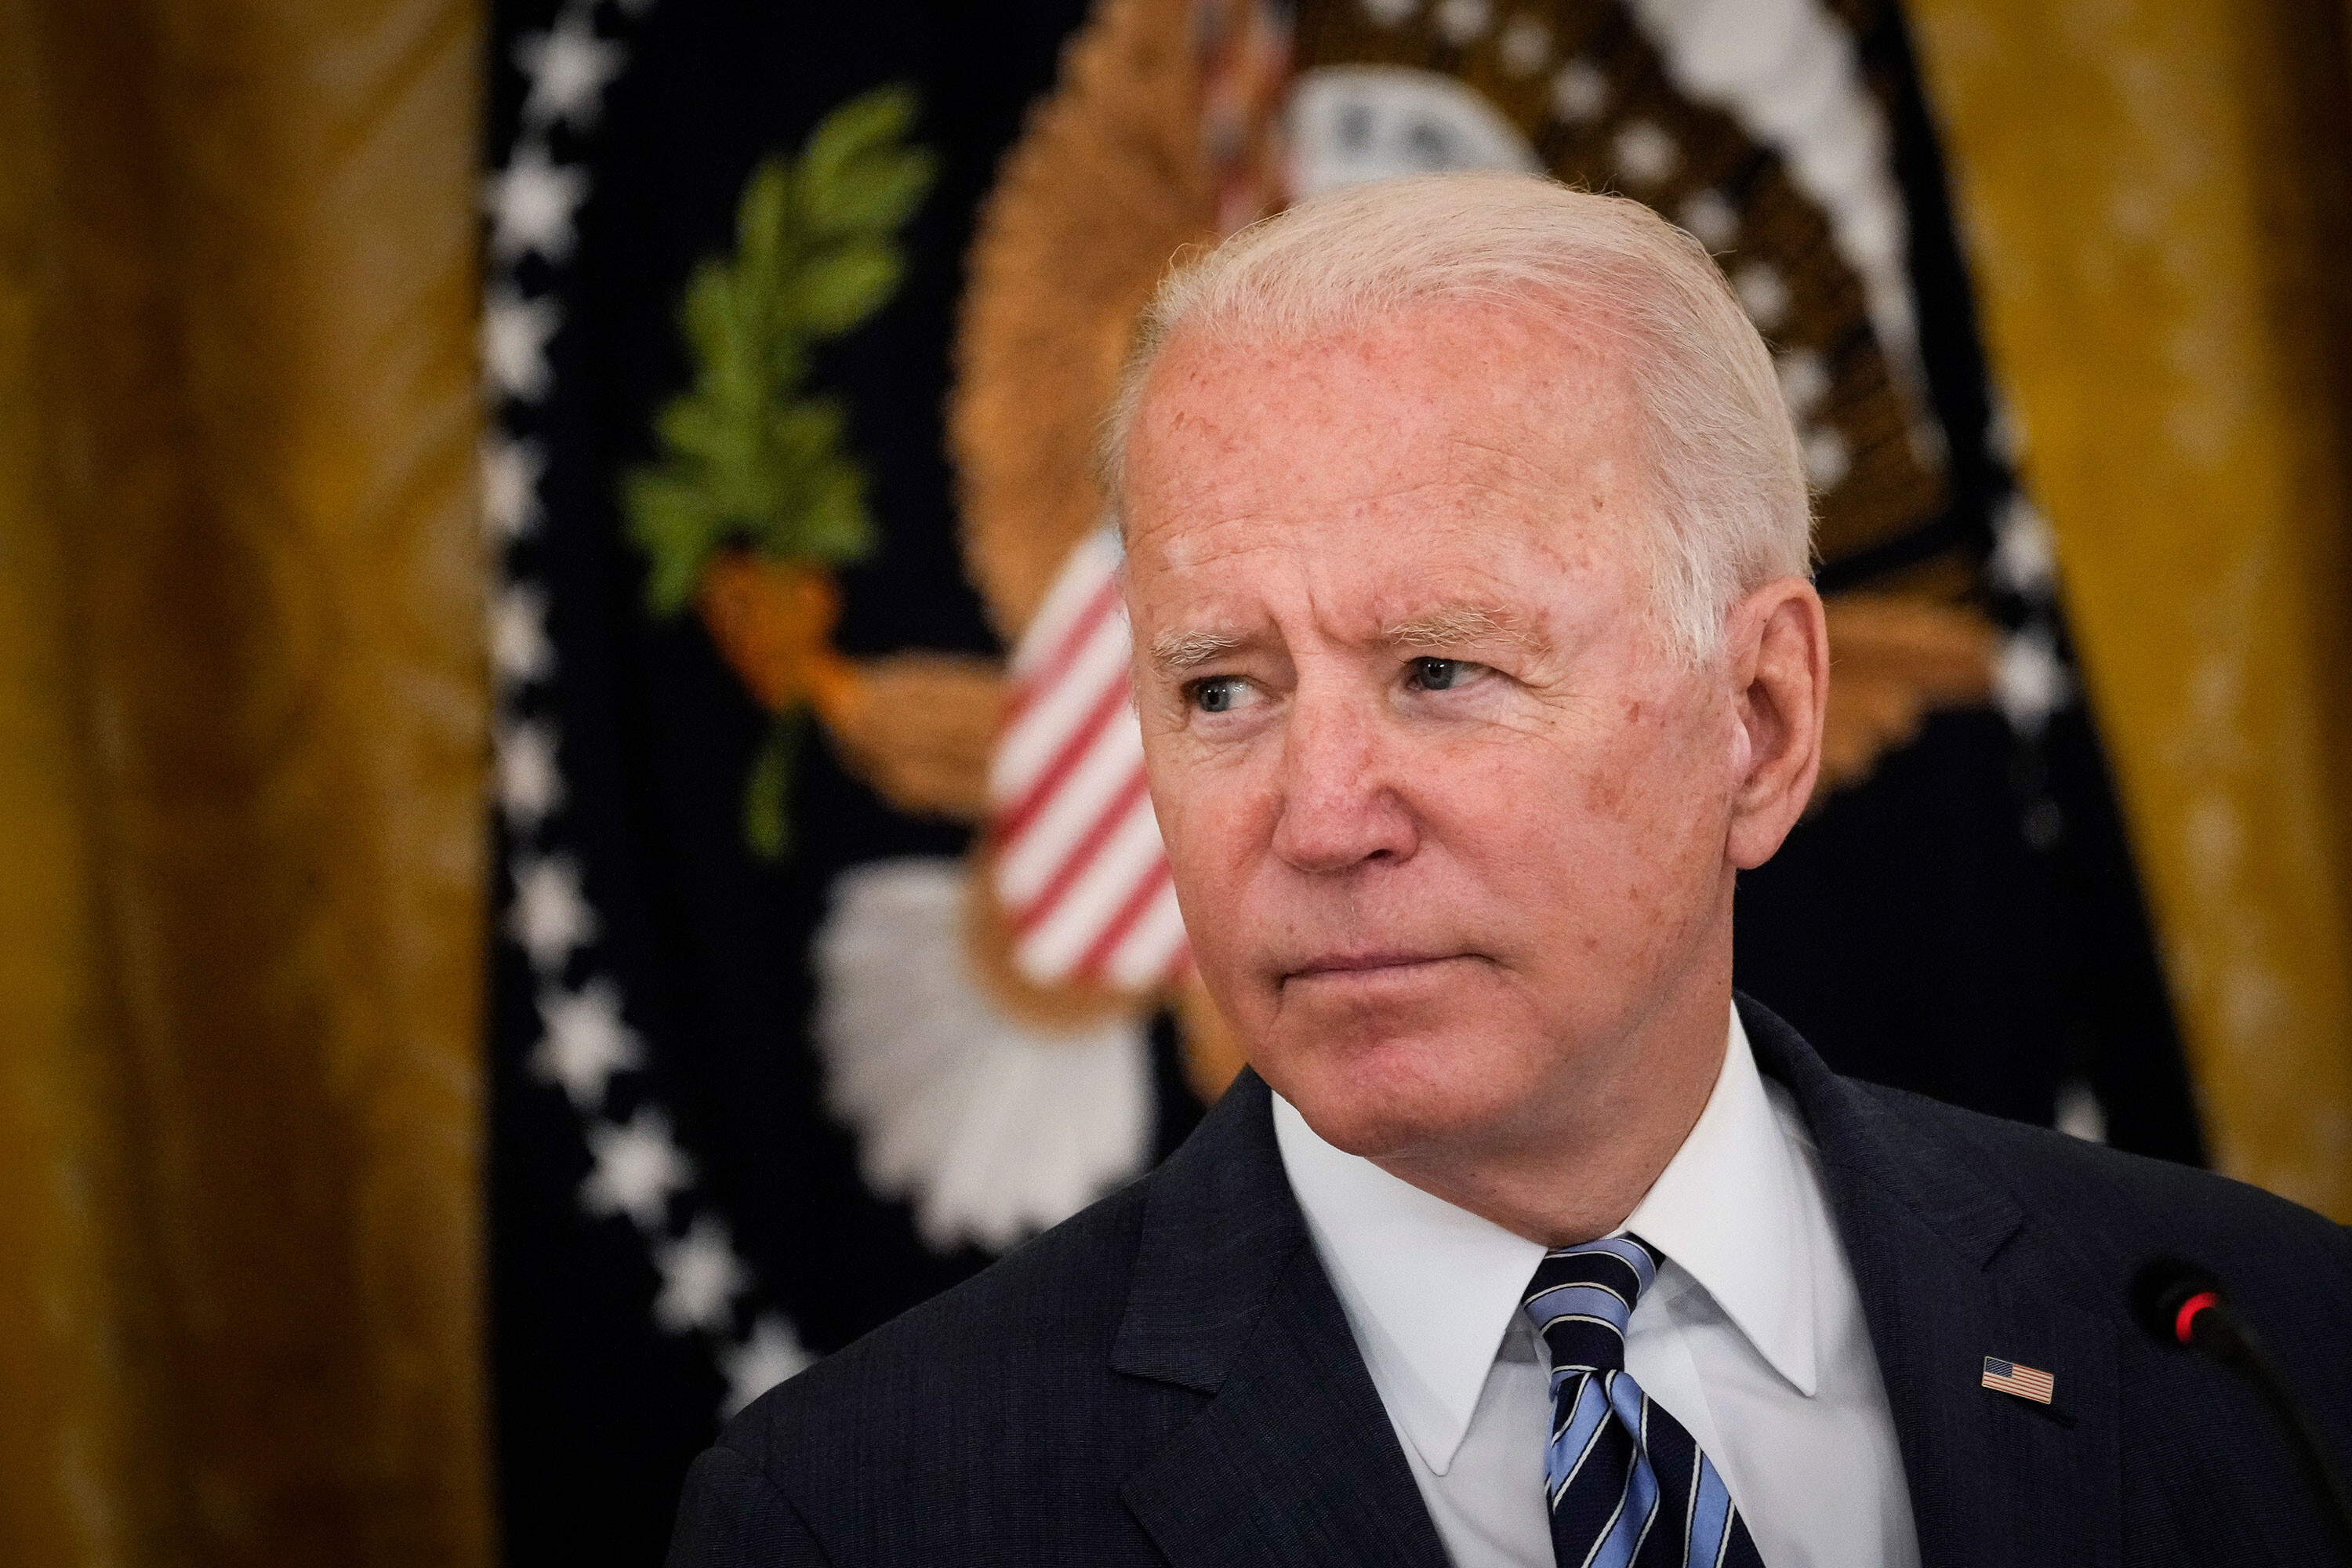 Biden says Democrats are at a 'stalemate' as his economic agenda hangs in the balance on Capitol Hill